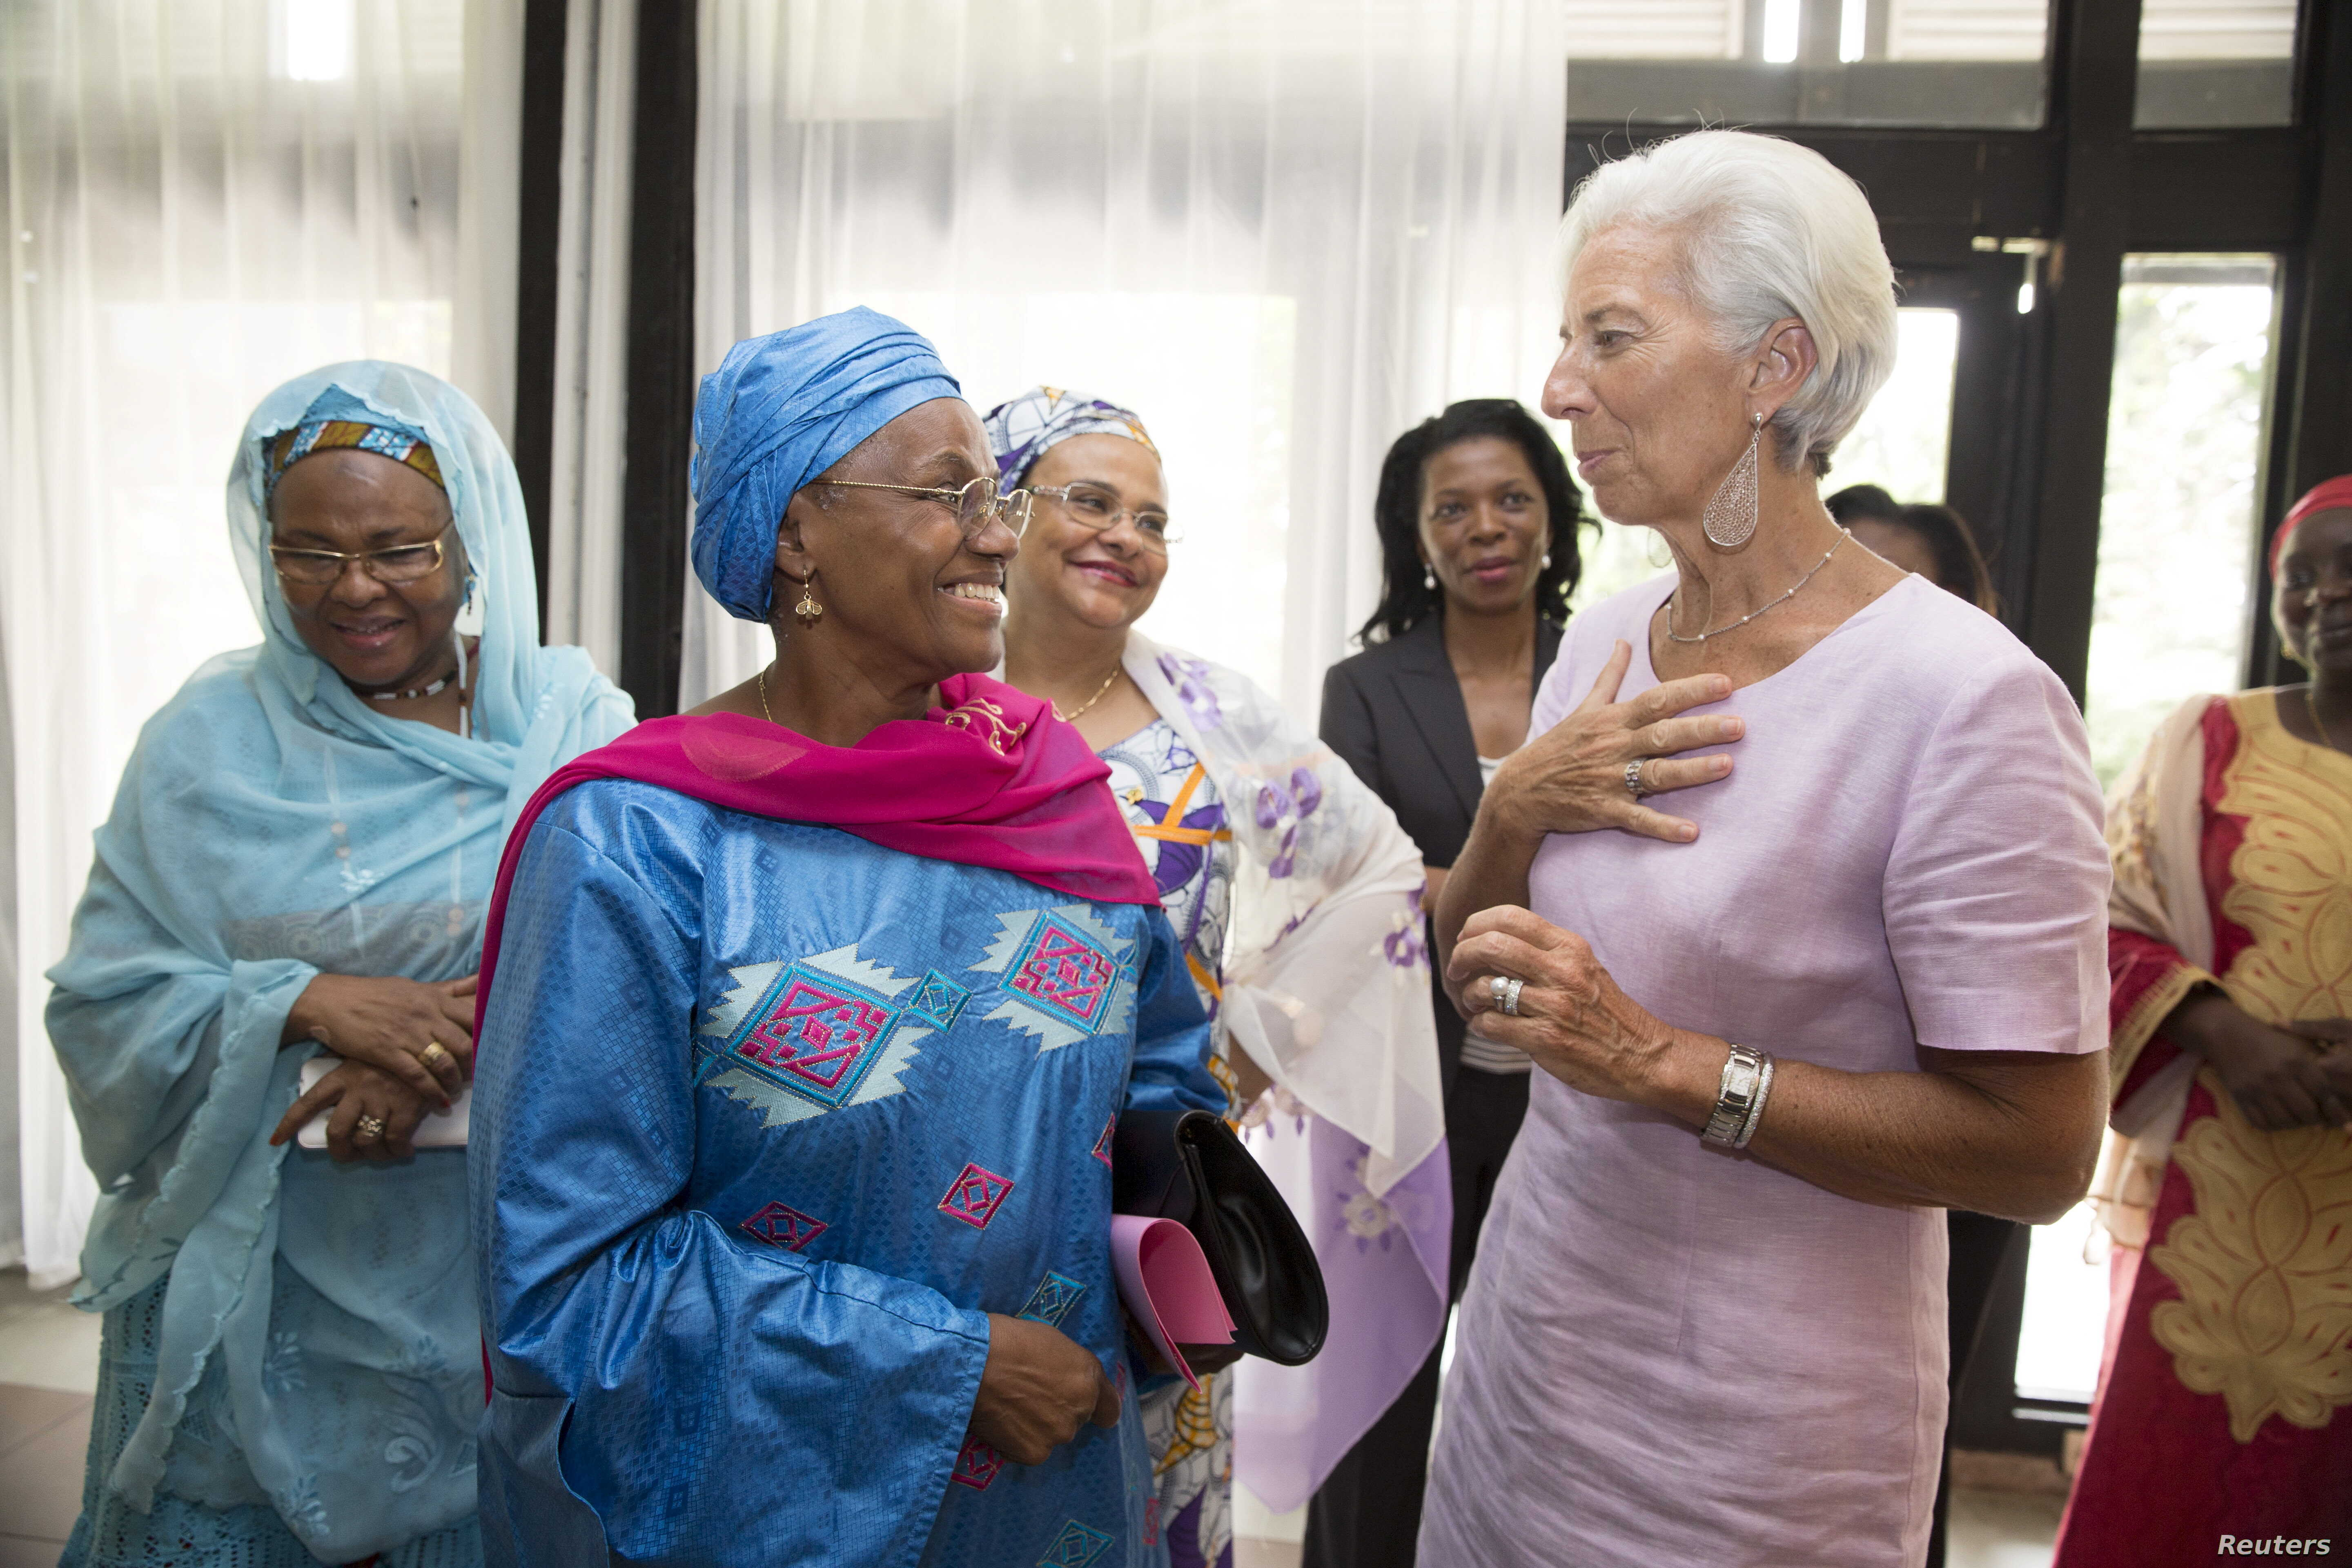 Cameroon Seeks Greater Female Political Participation